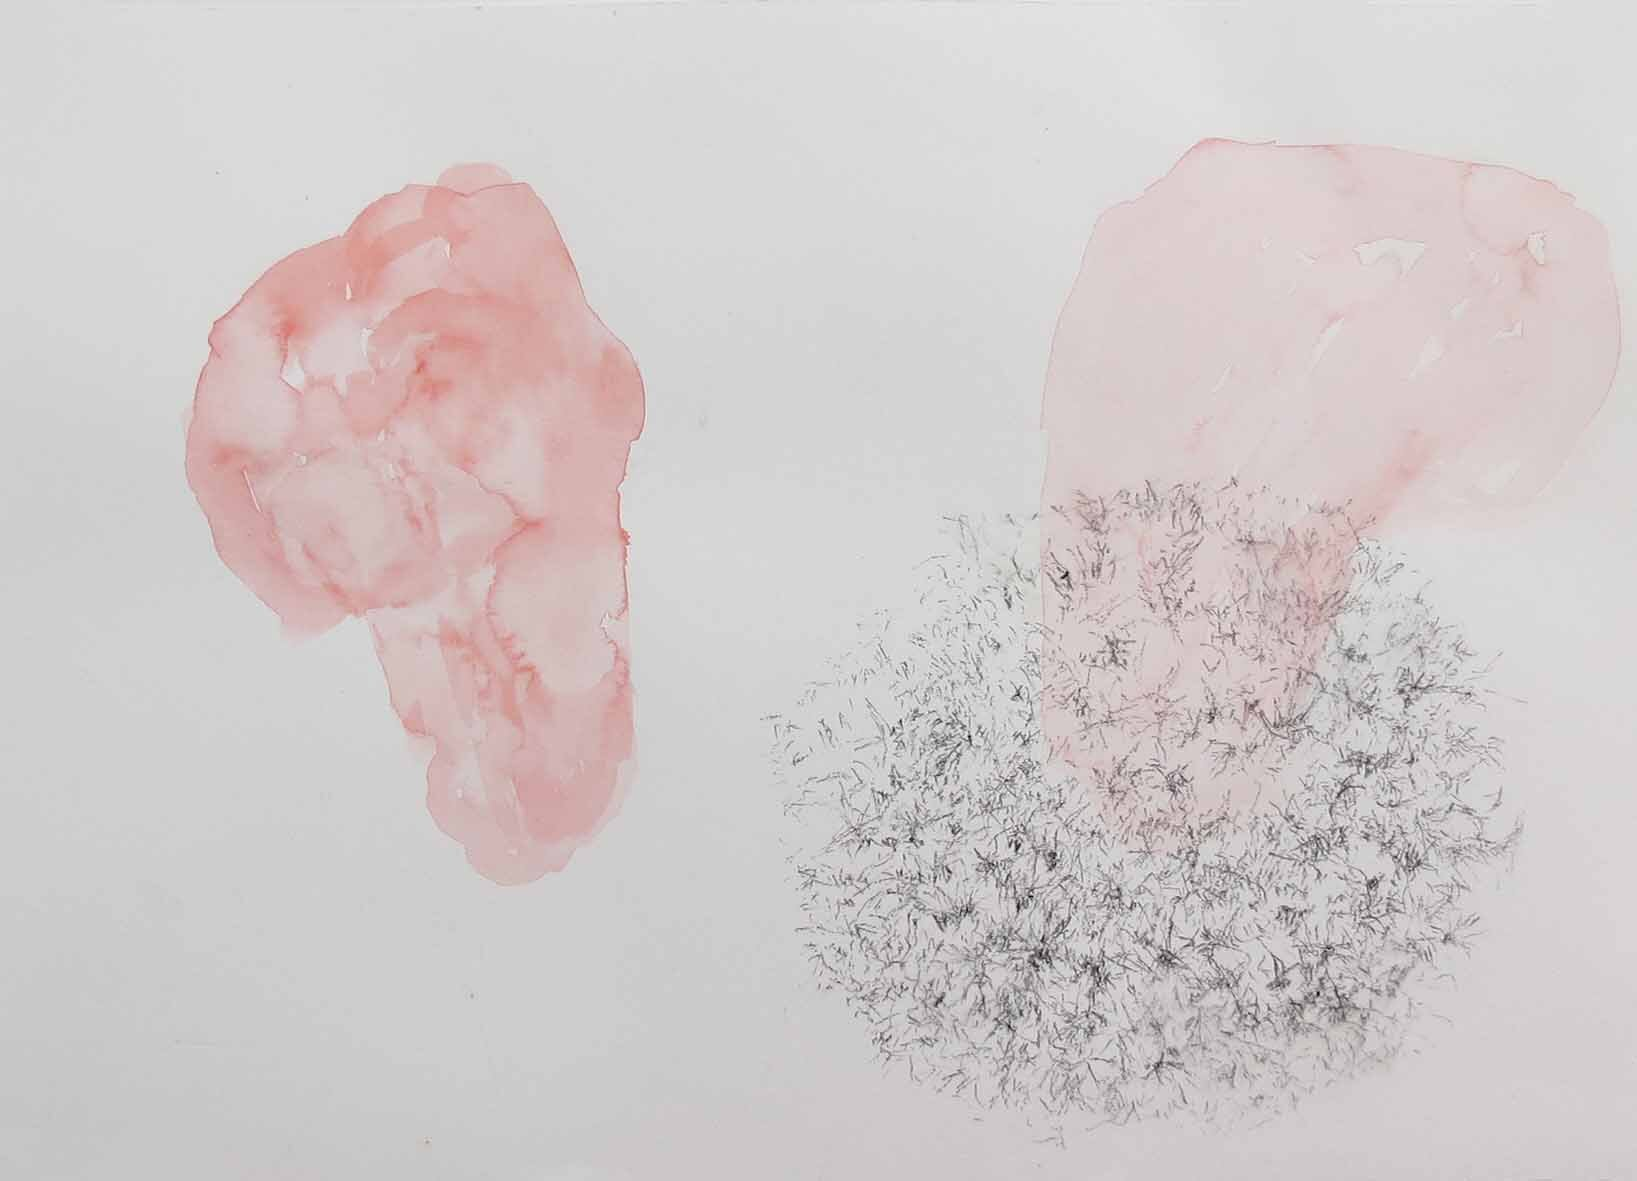 37. Angela Stewart, Yesterday…, 2019, charcoal pencil, vermillion water colour on cold pressed 300gsm watercolour paper, 30 x 42 cm $350